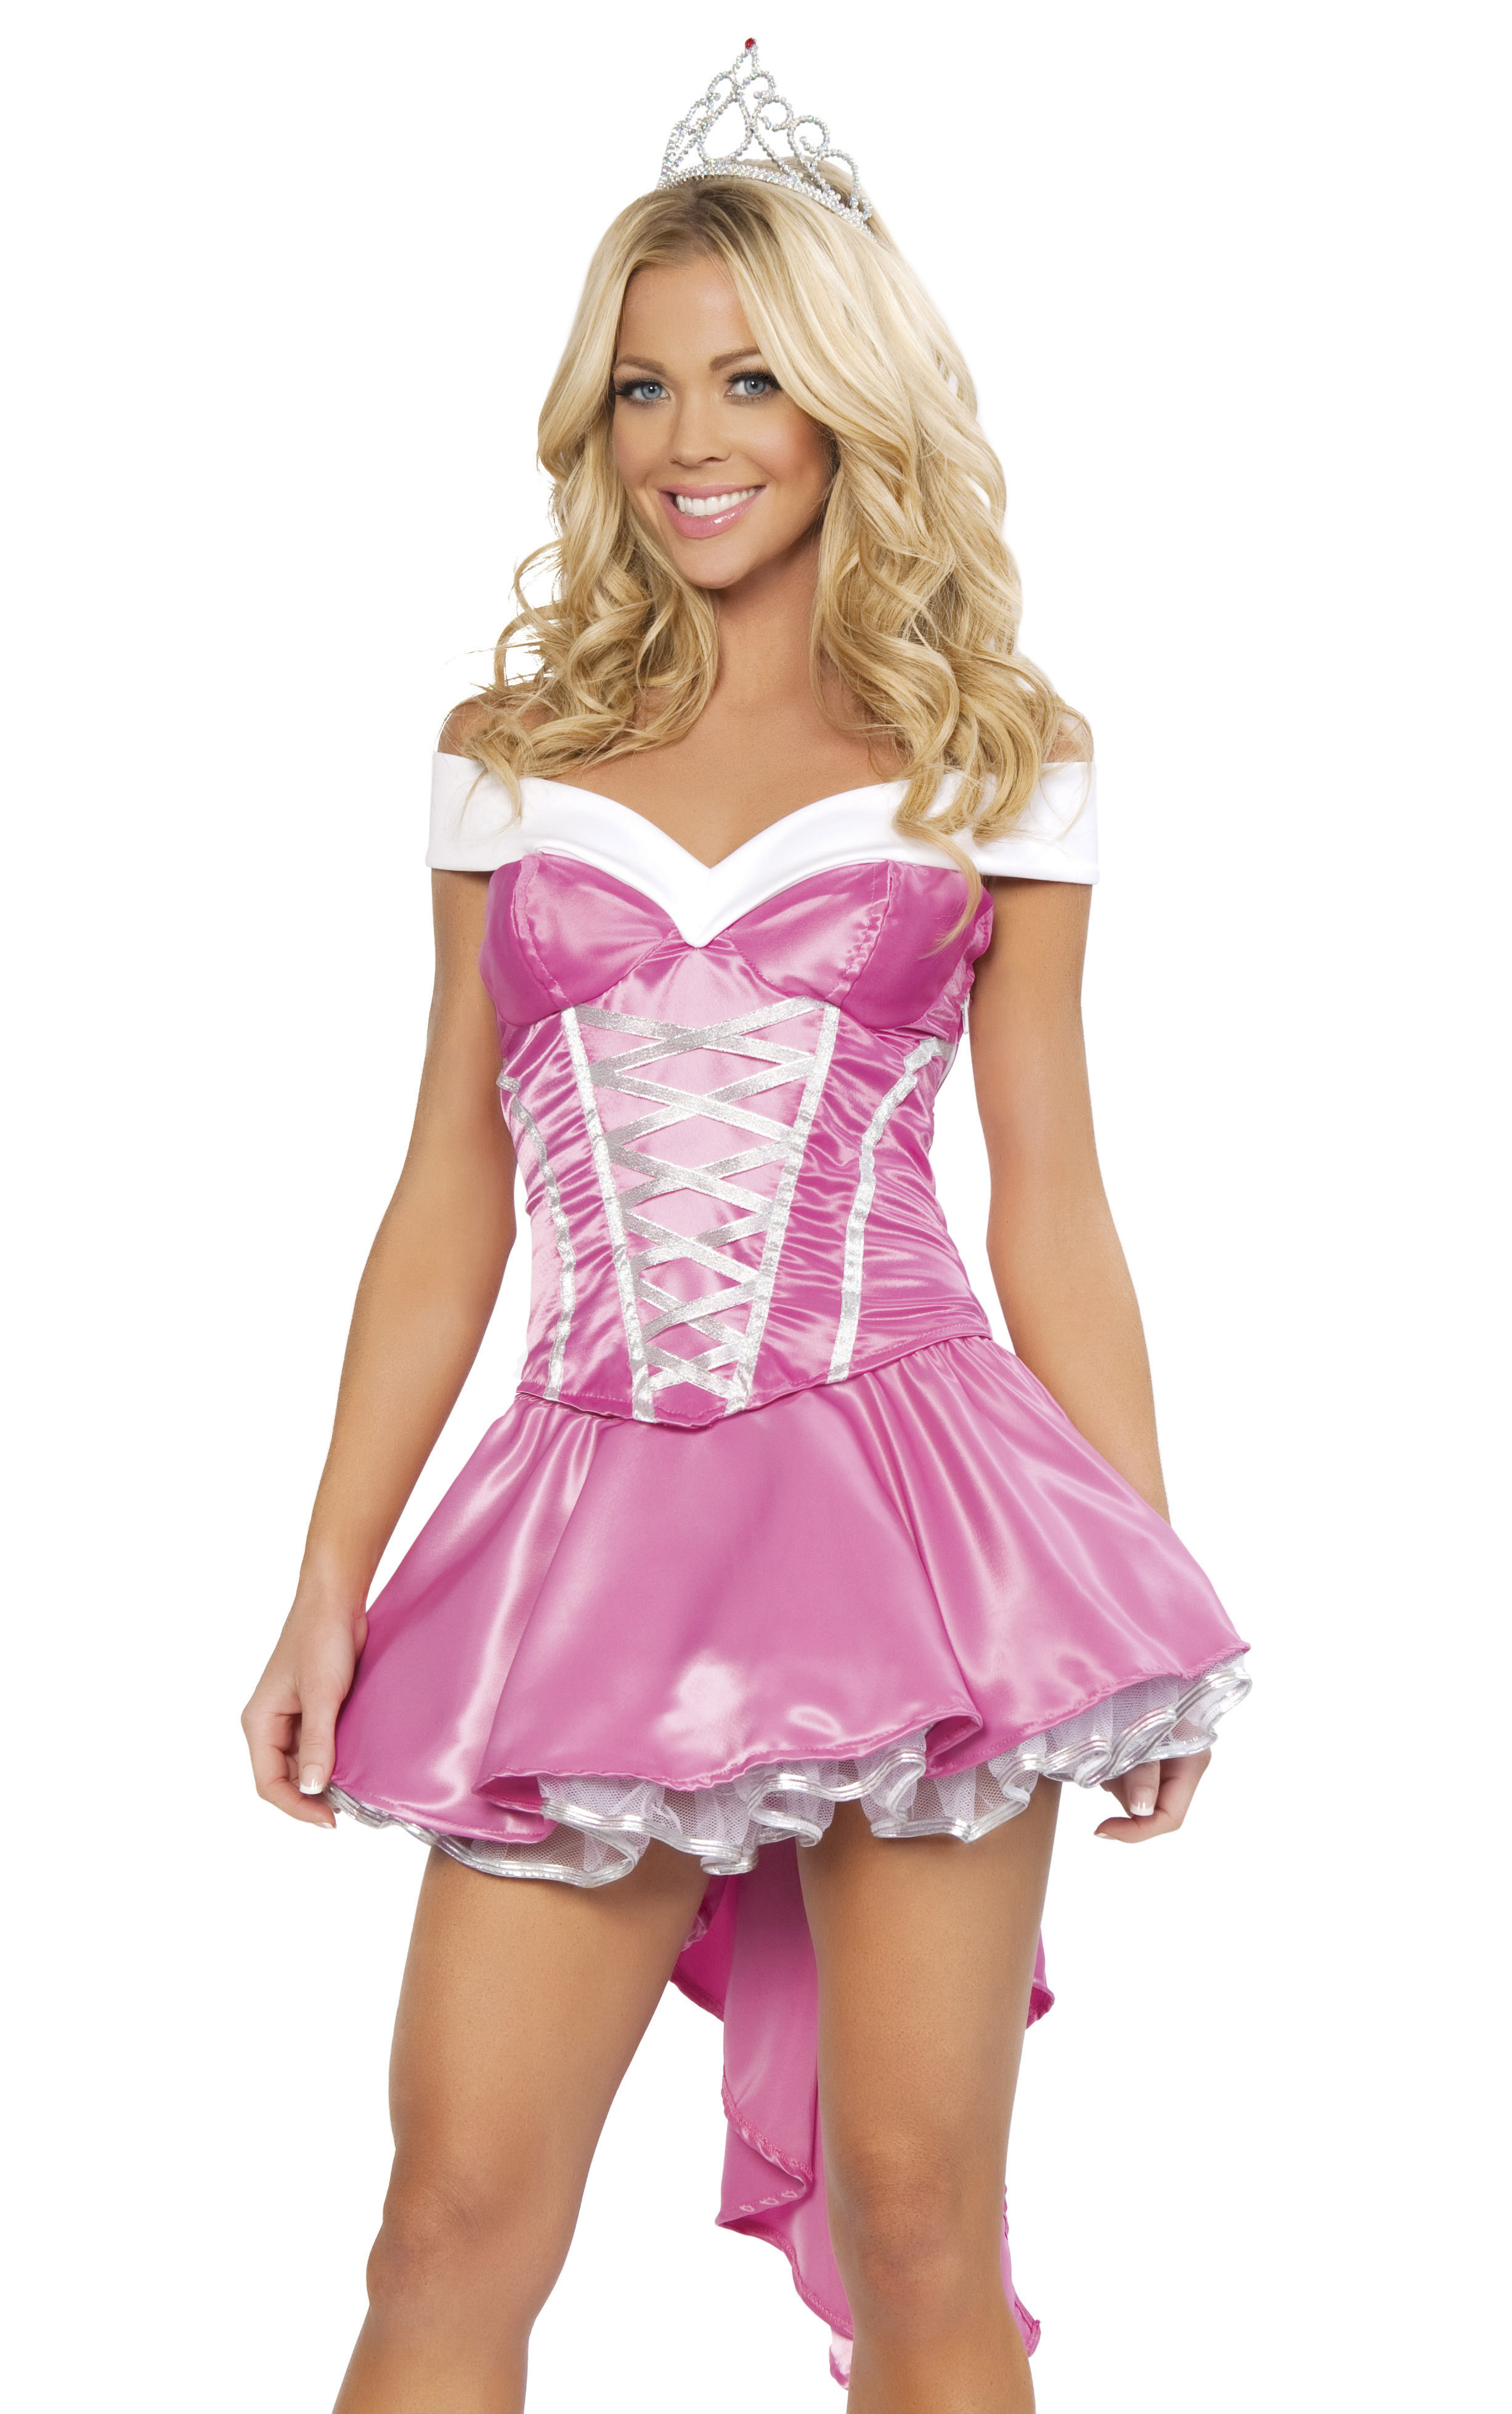 This Adult sleeping beauty costume topic, very